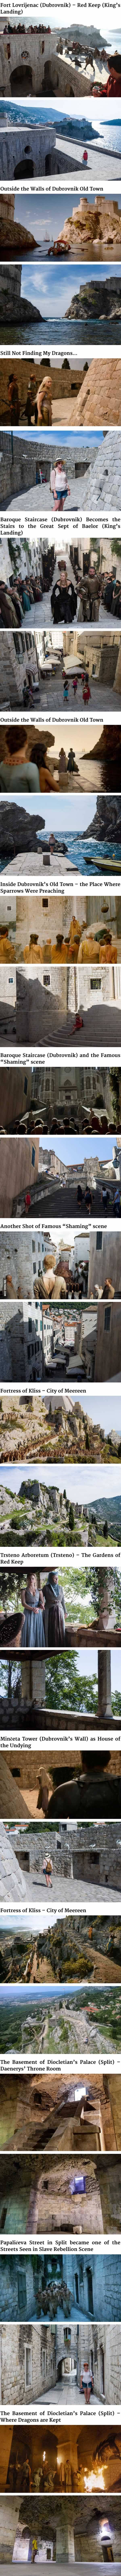 They Traveled To Croatia To Find Game Of Thrones Filming Locations In Real-Life